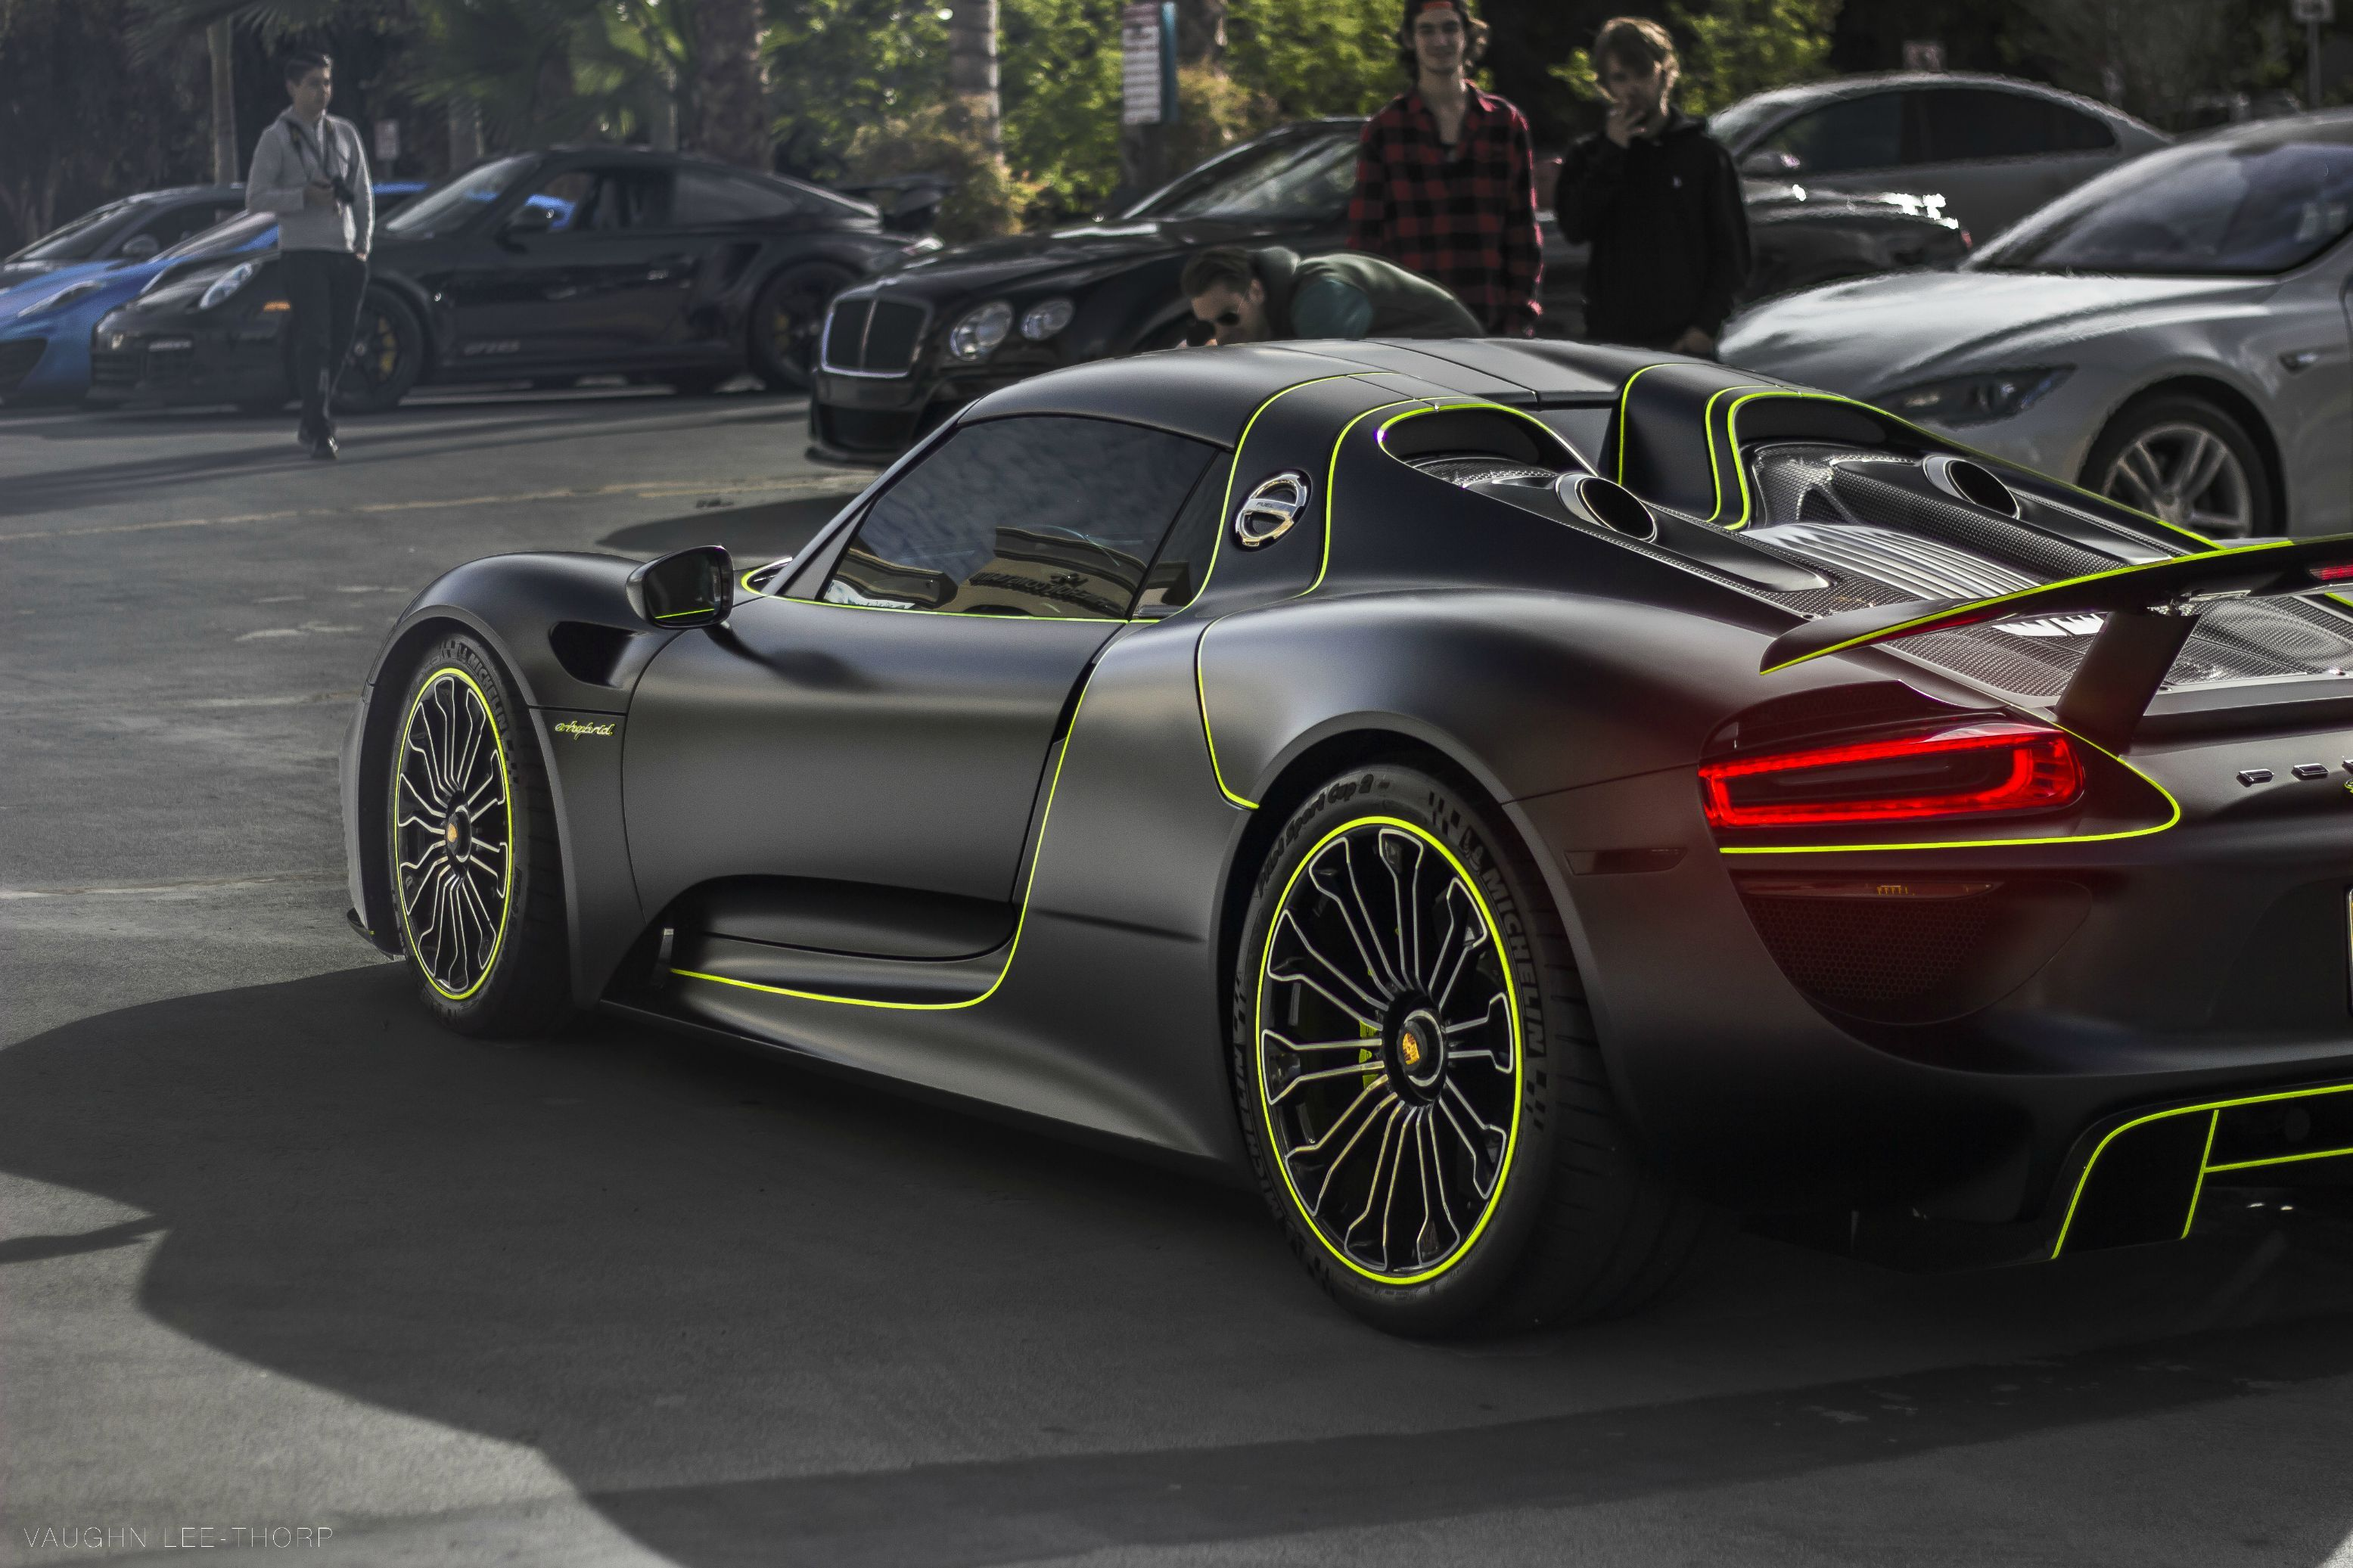 163a1c7070f01119012537571f714054 Fascinating Porsche 918 Spyder Cost Uk Cars Trend